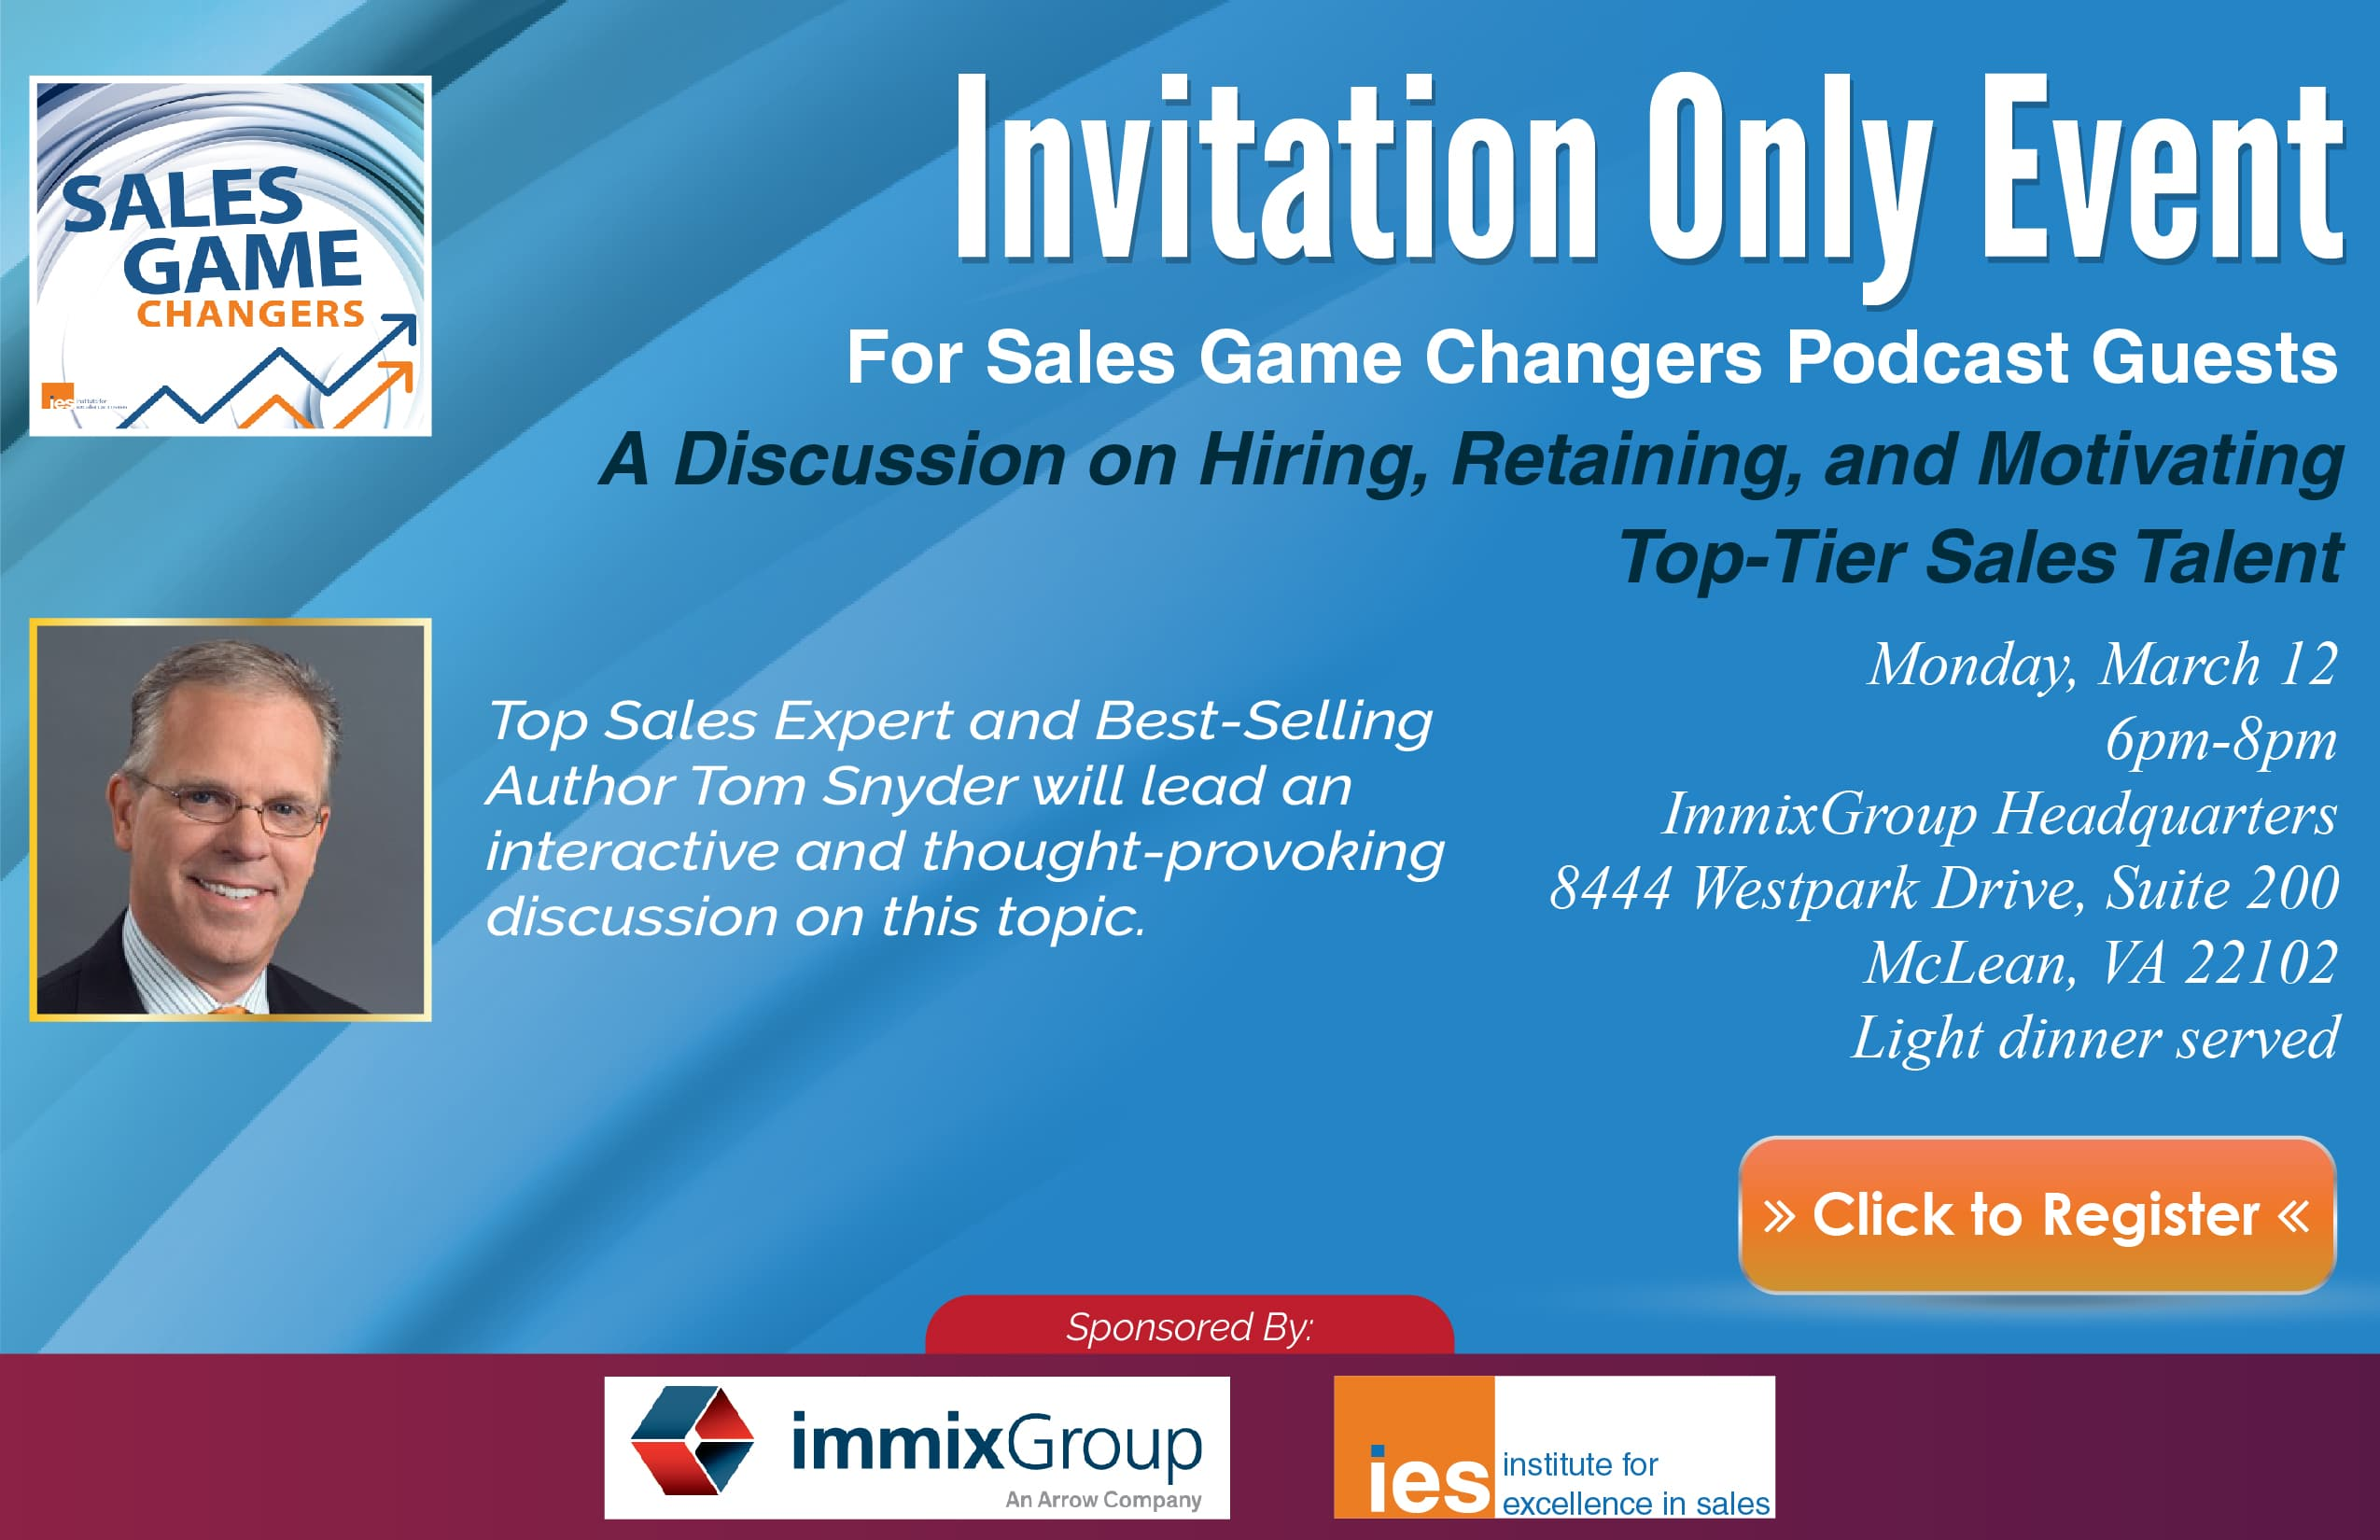 Sales Game Changers Podcast Guest Invitation Only Event March 12